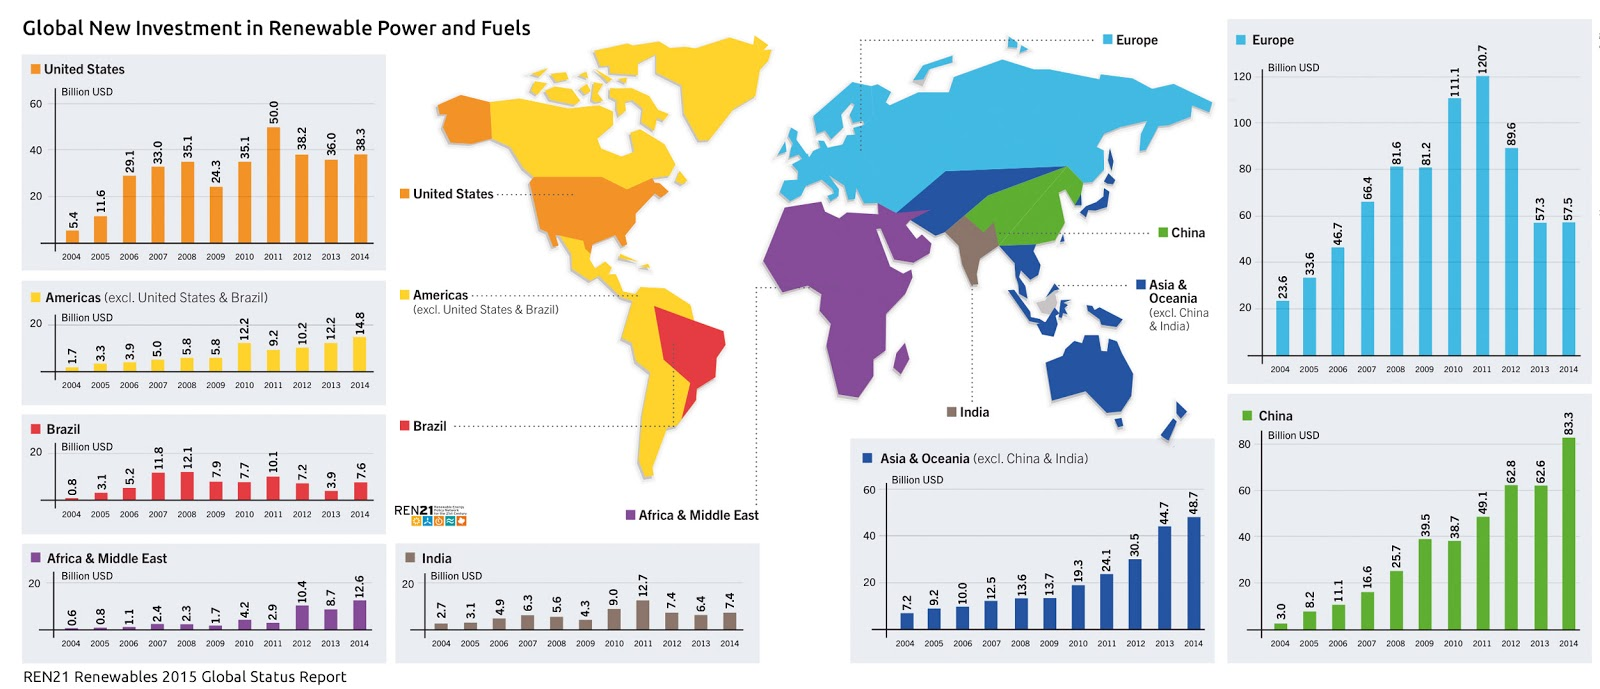 Global new investment in renewable power and fuels